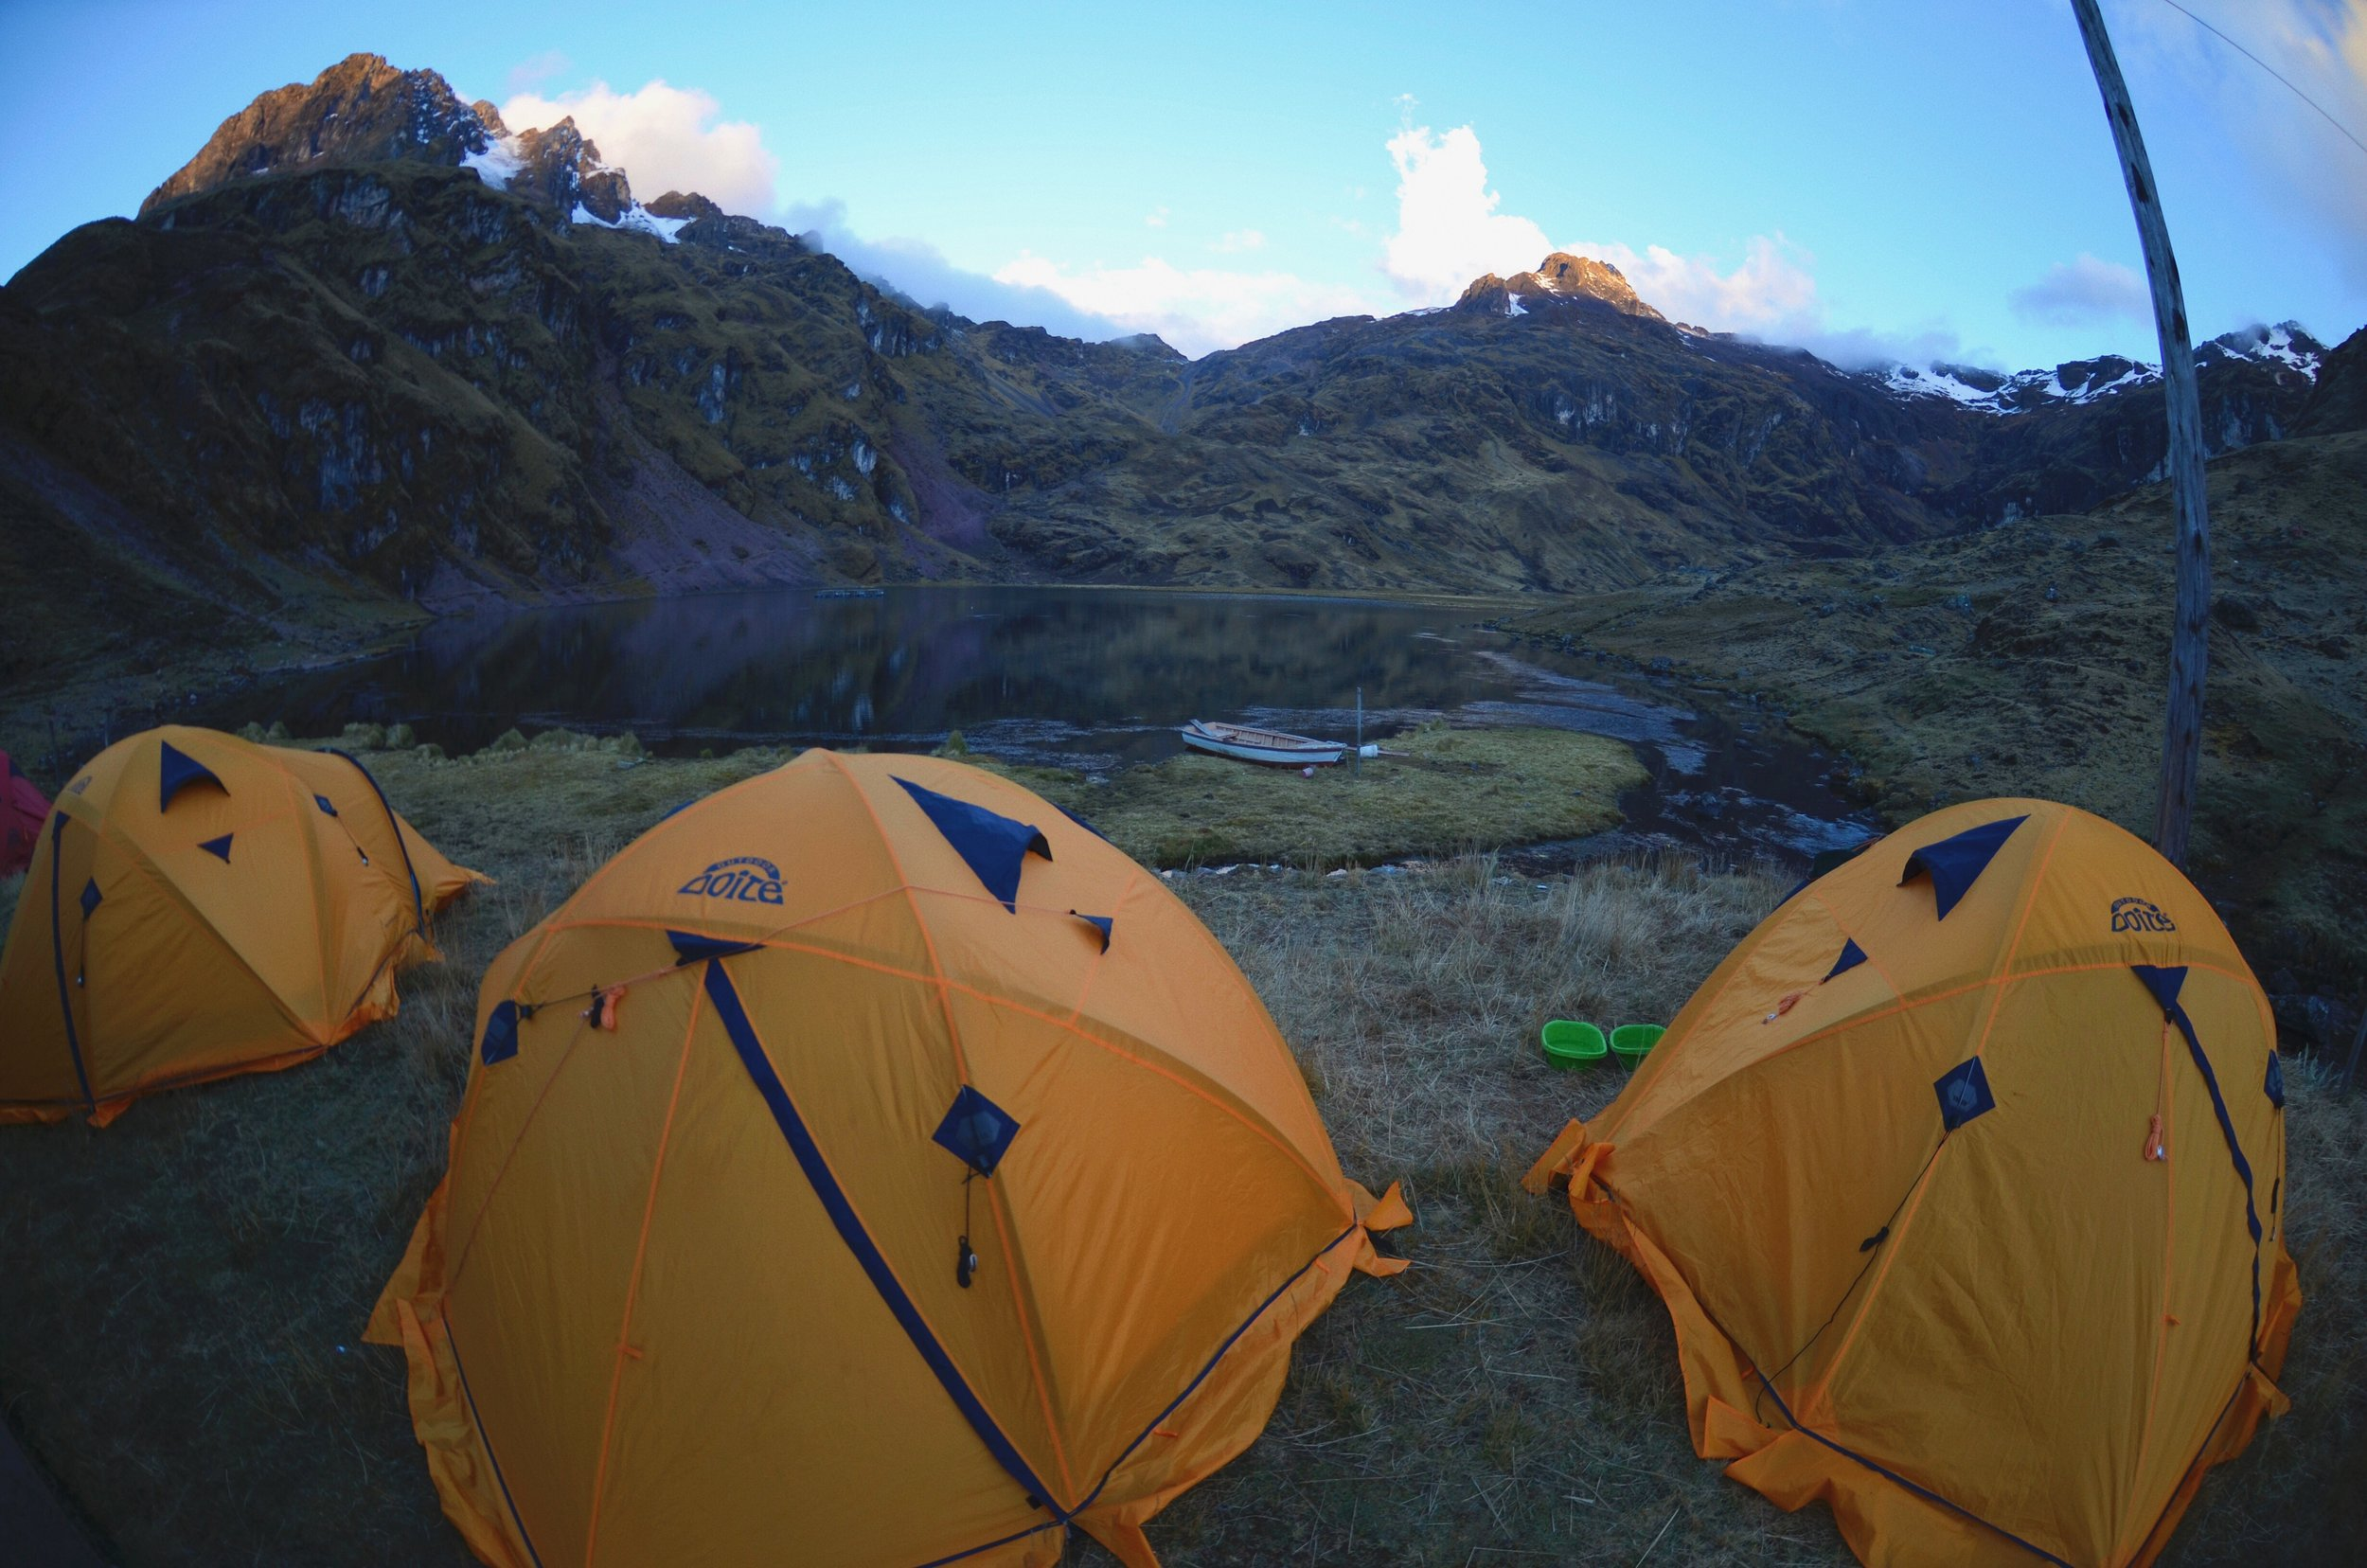 Our camping spot on the Lares Trek in Peru.